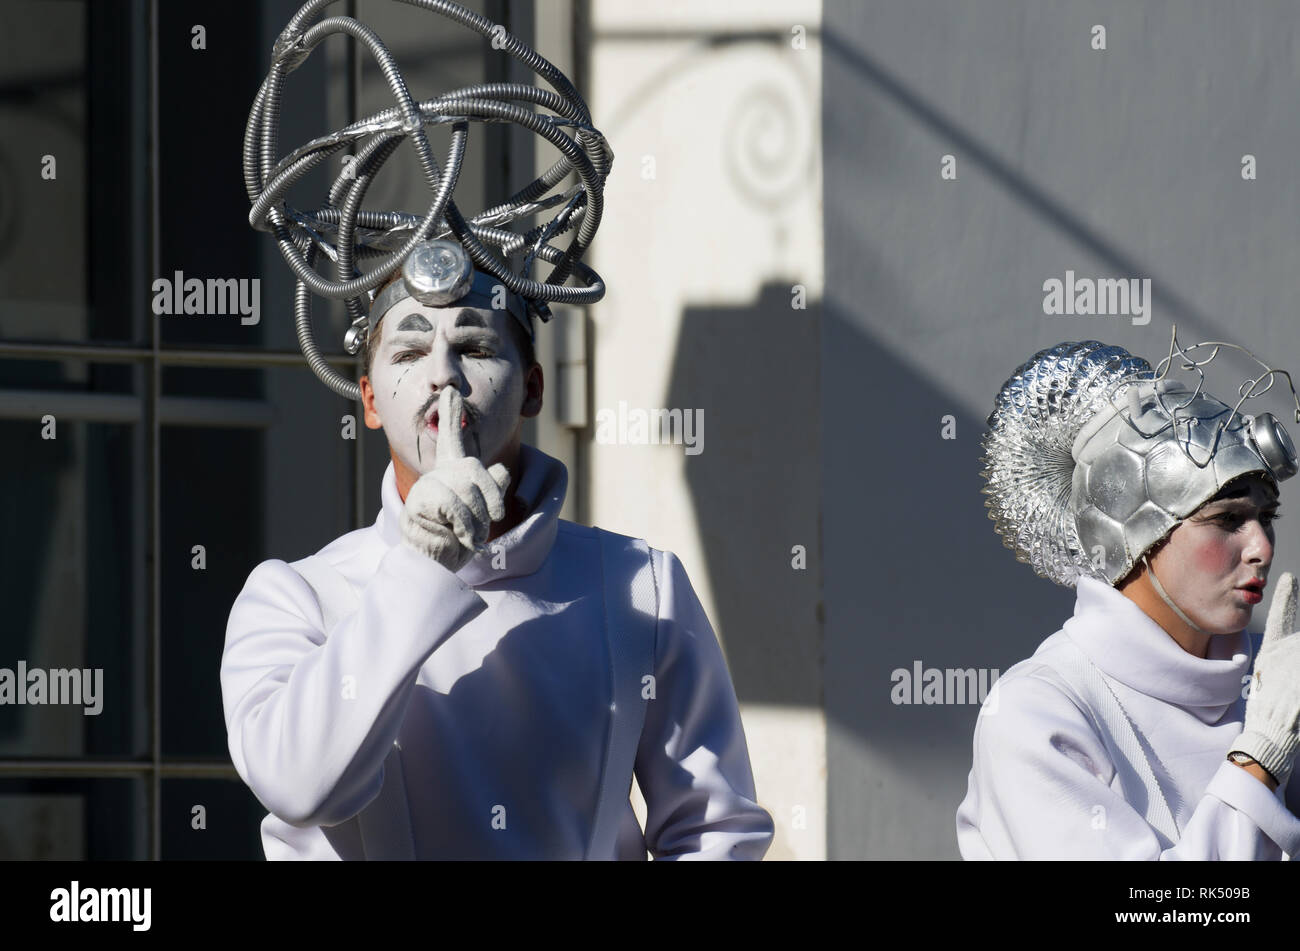 Saint Petersburg, Russia - August 4, 2018: Festival of street theatres. A man in a fantastic suit puts his index finger to to his lips and says Shh - Stock Image